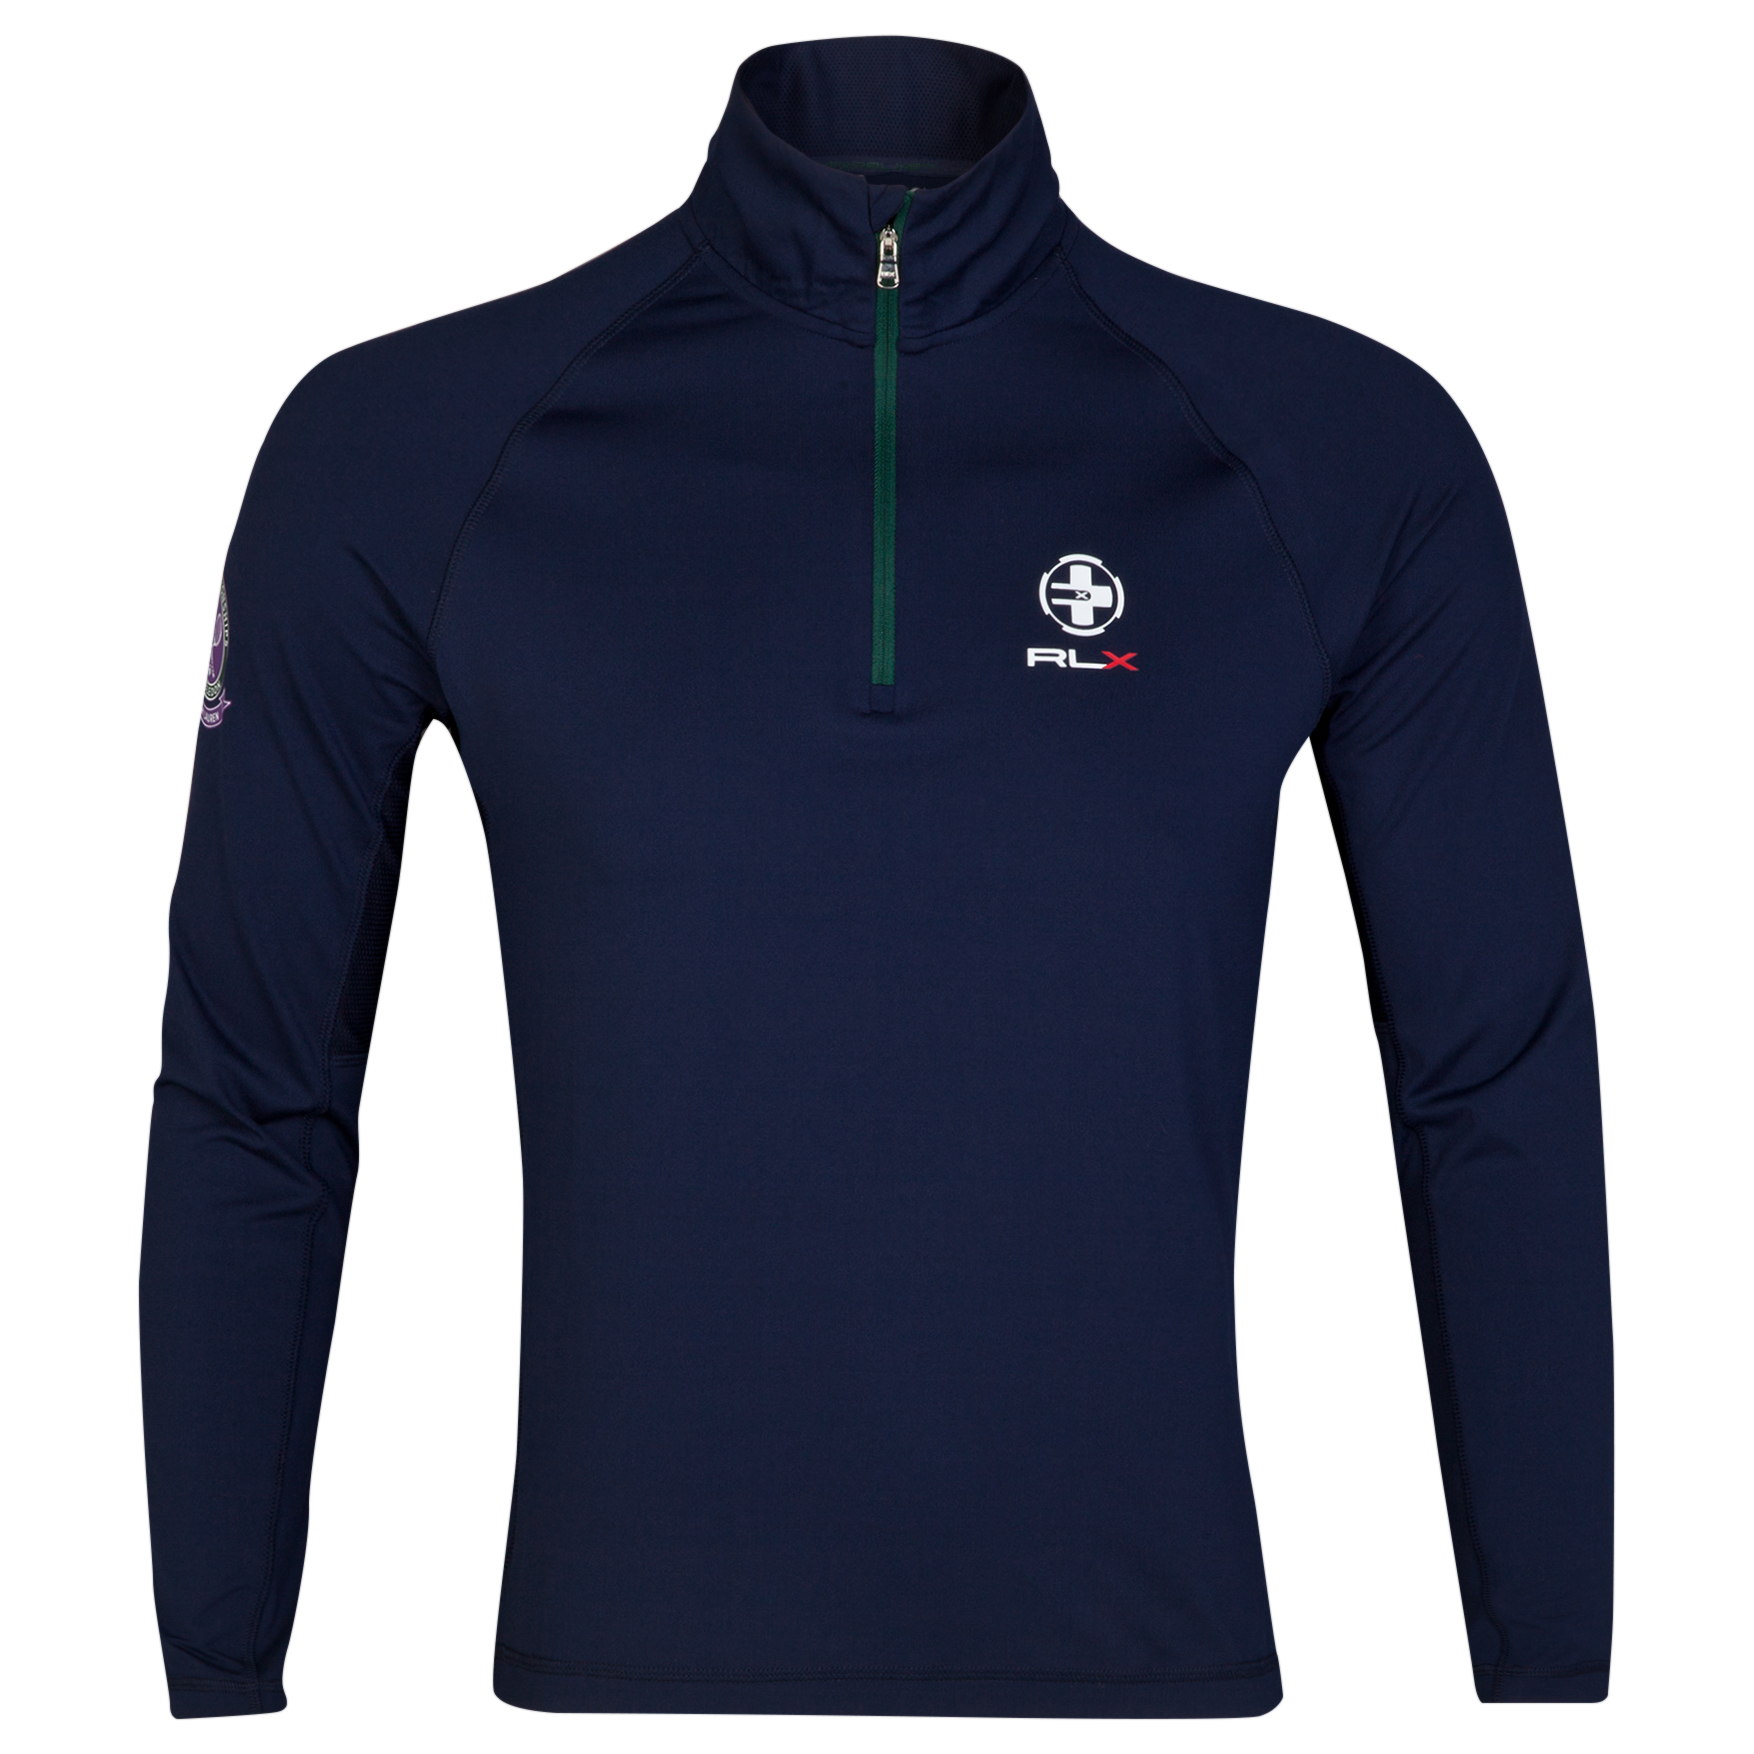 Wimbledon Polo Ralph Lauren RLX Half Zip - French Navy